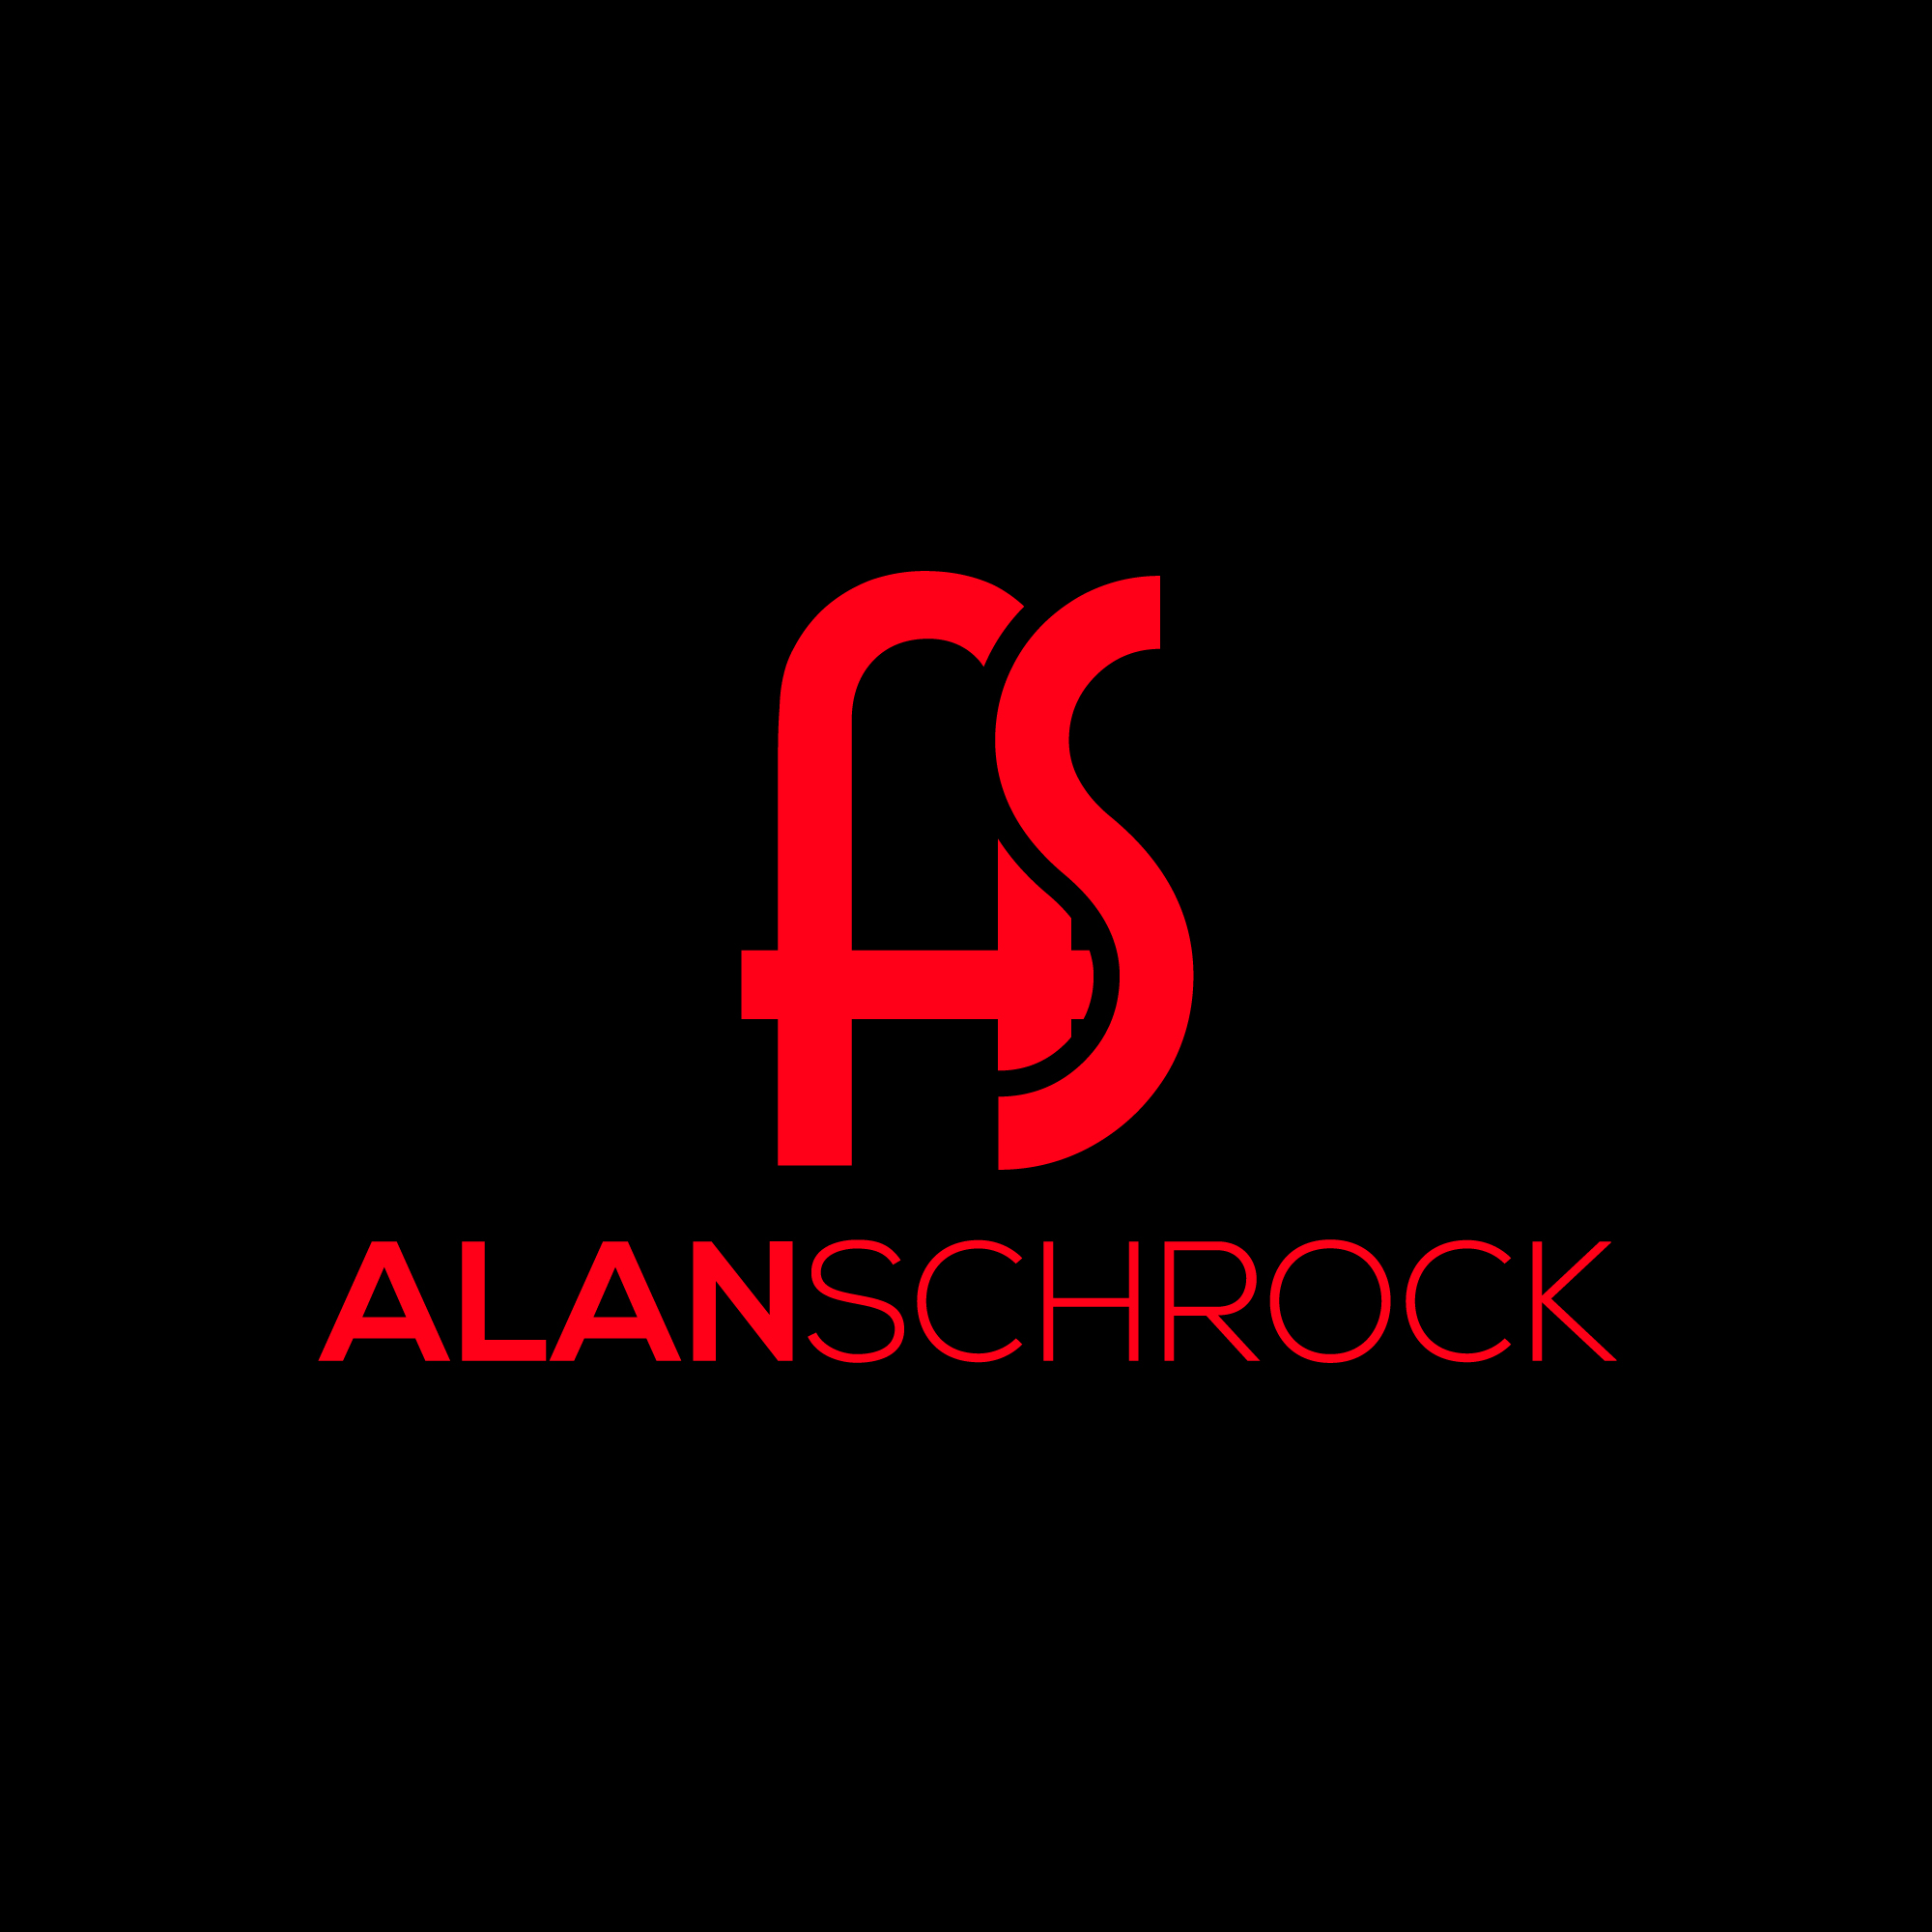 SCHROCK SELLS REAL ESTATE